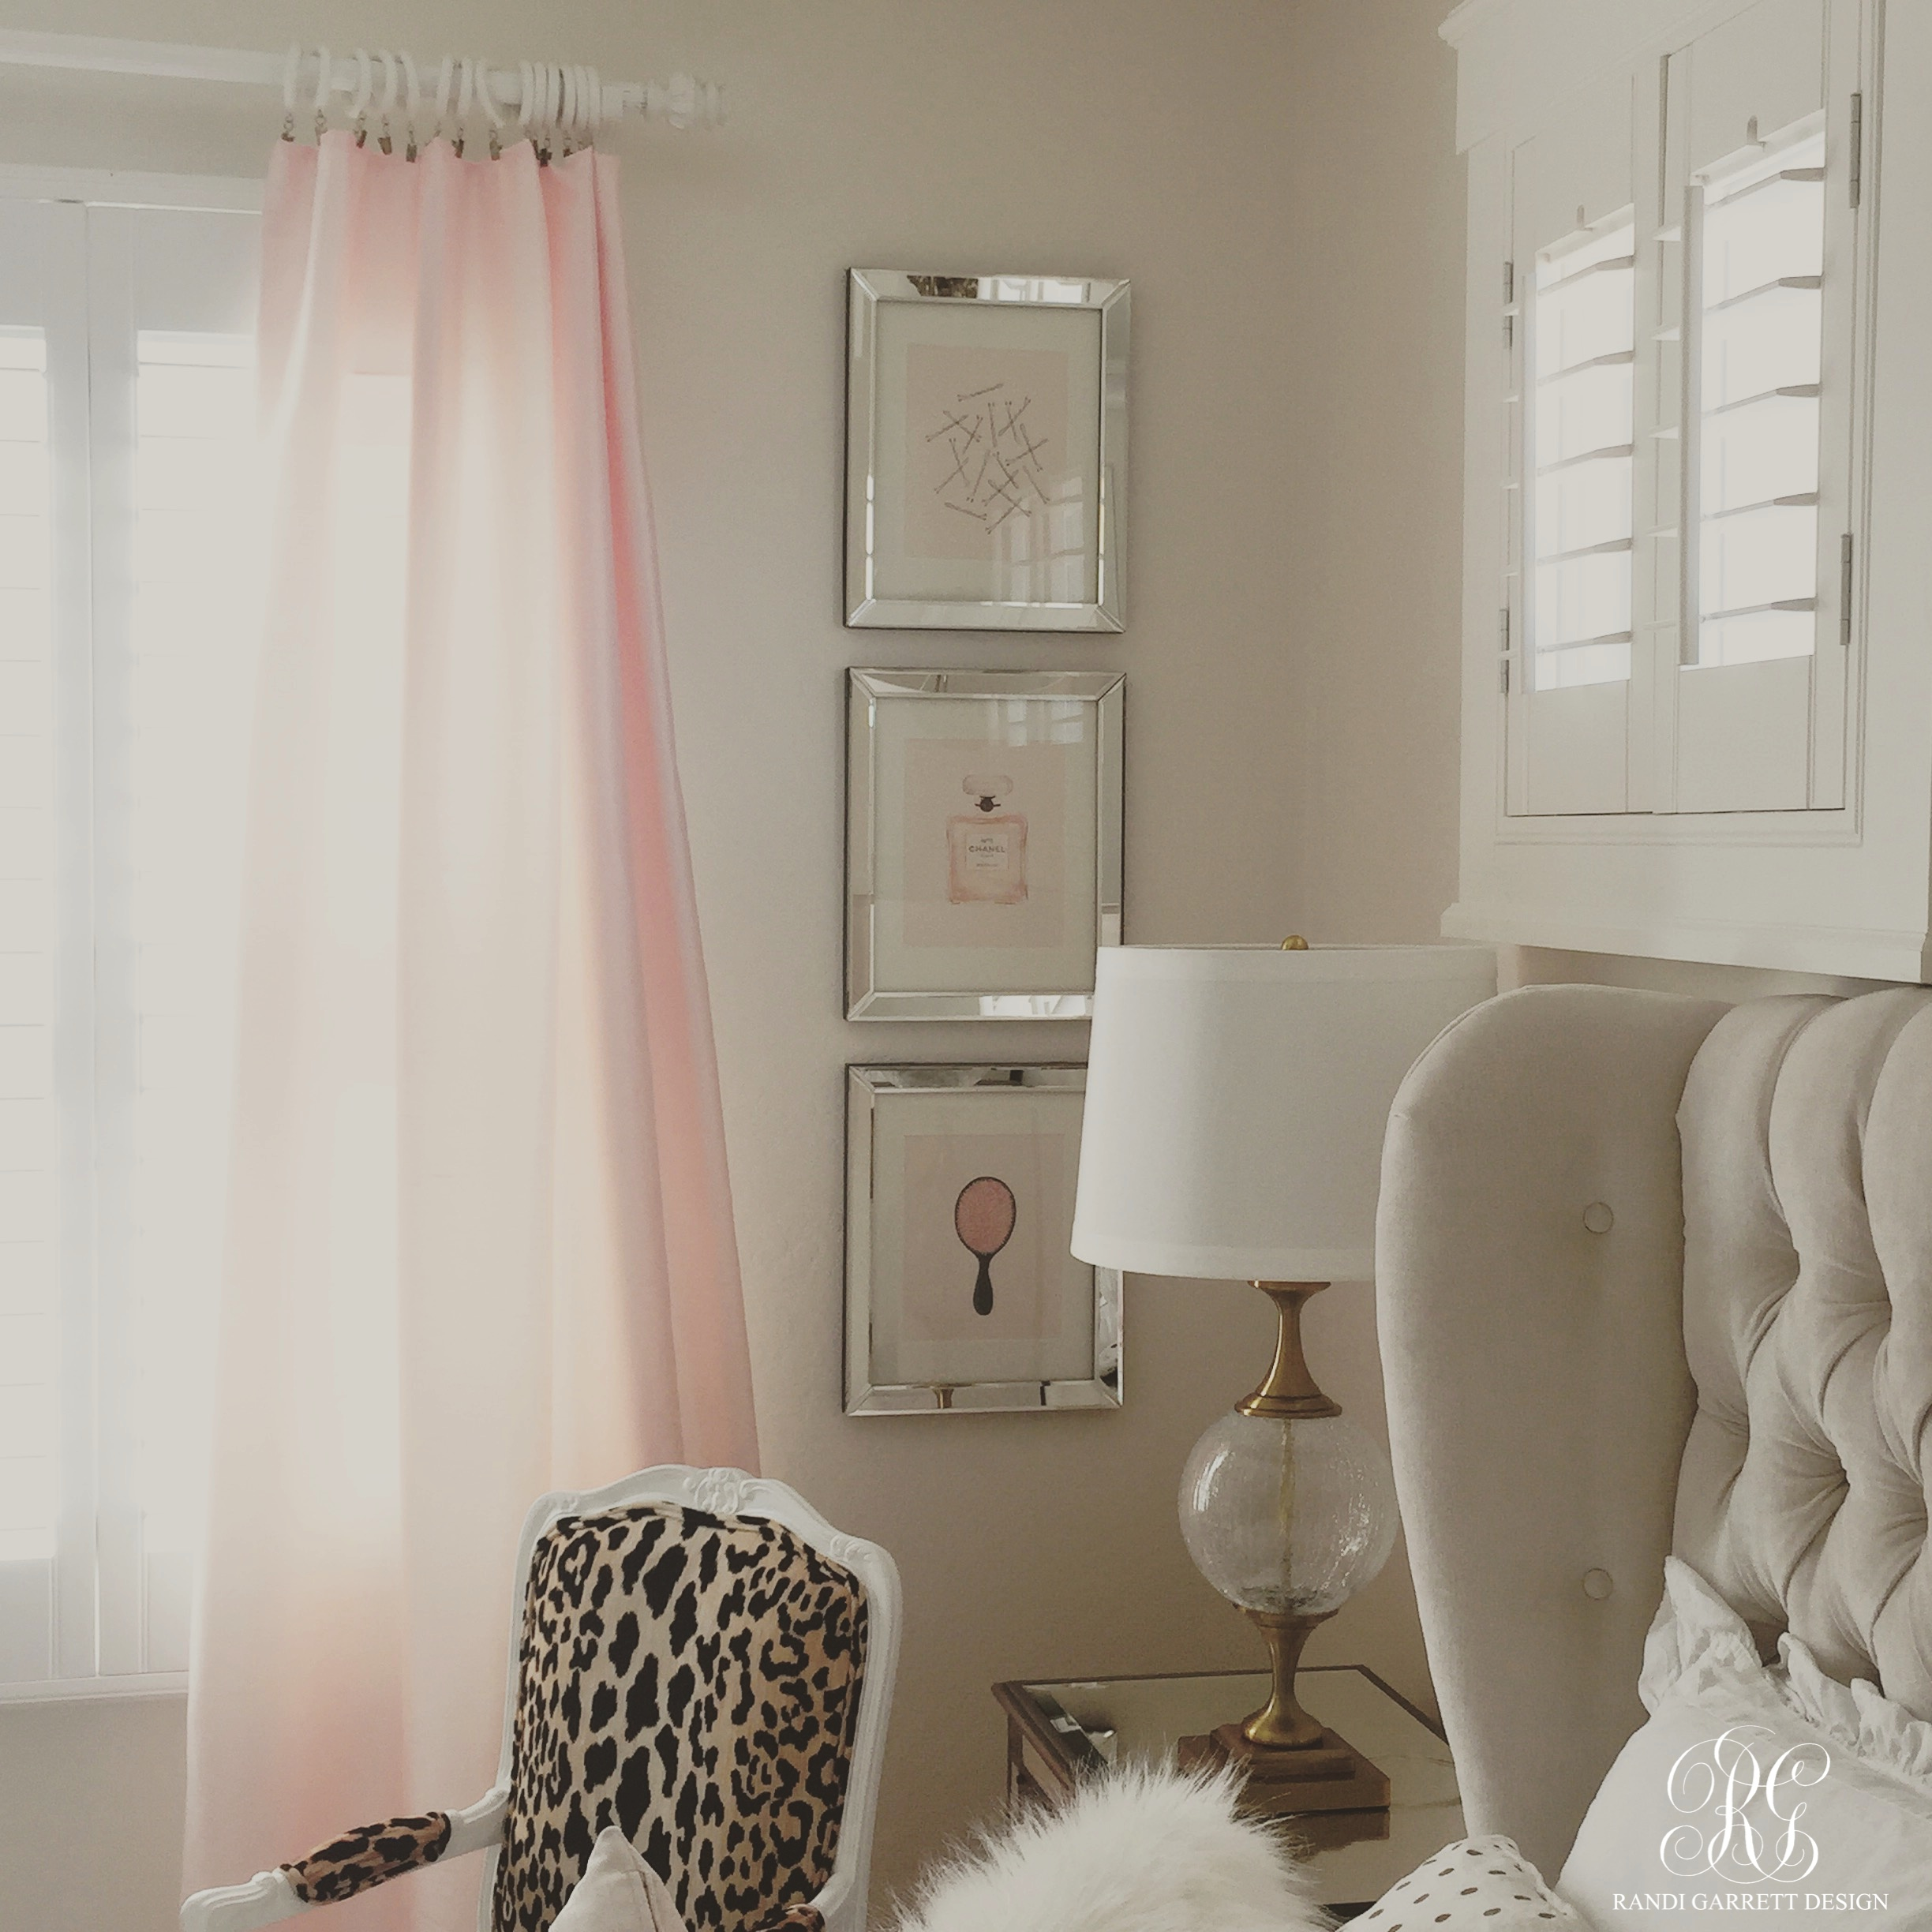 Pink and gold bedroom by Randi Garrett Design with mirror framed frames